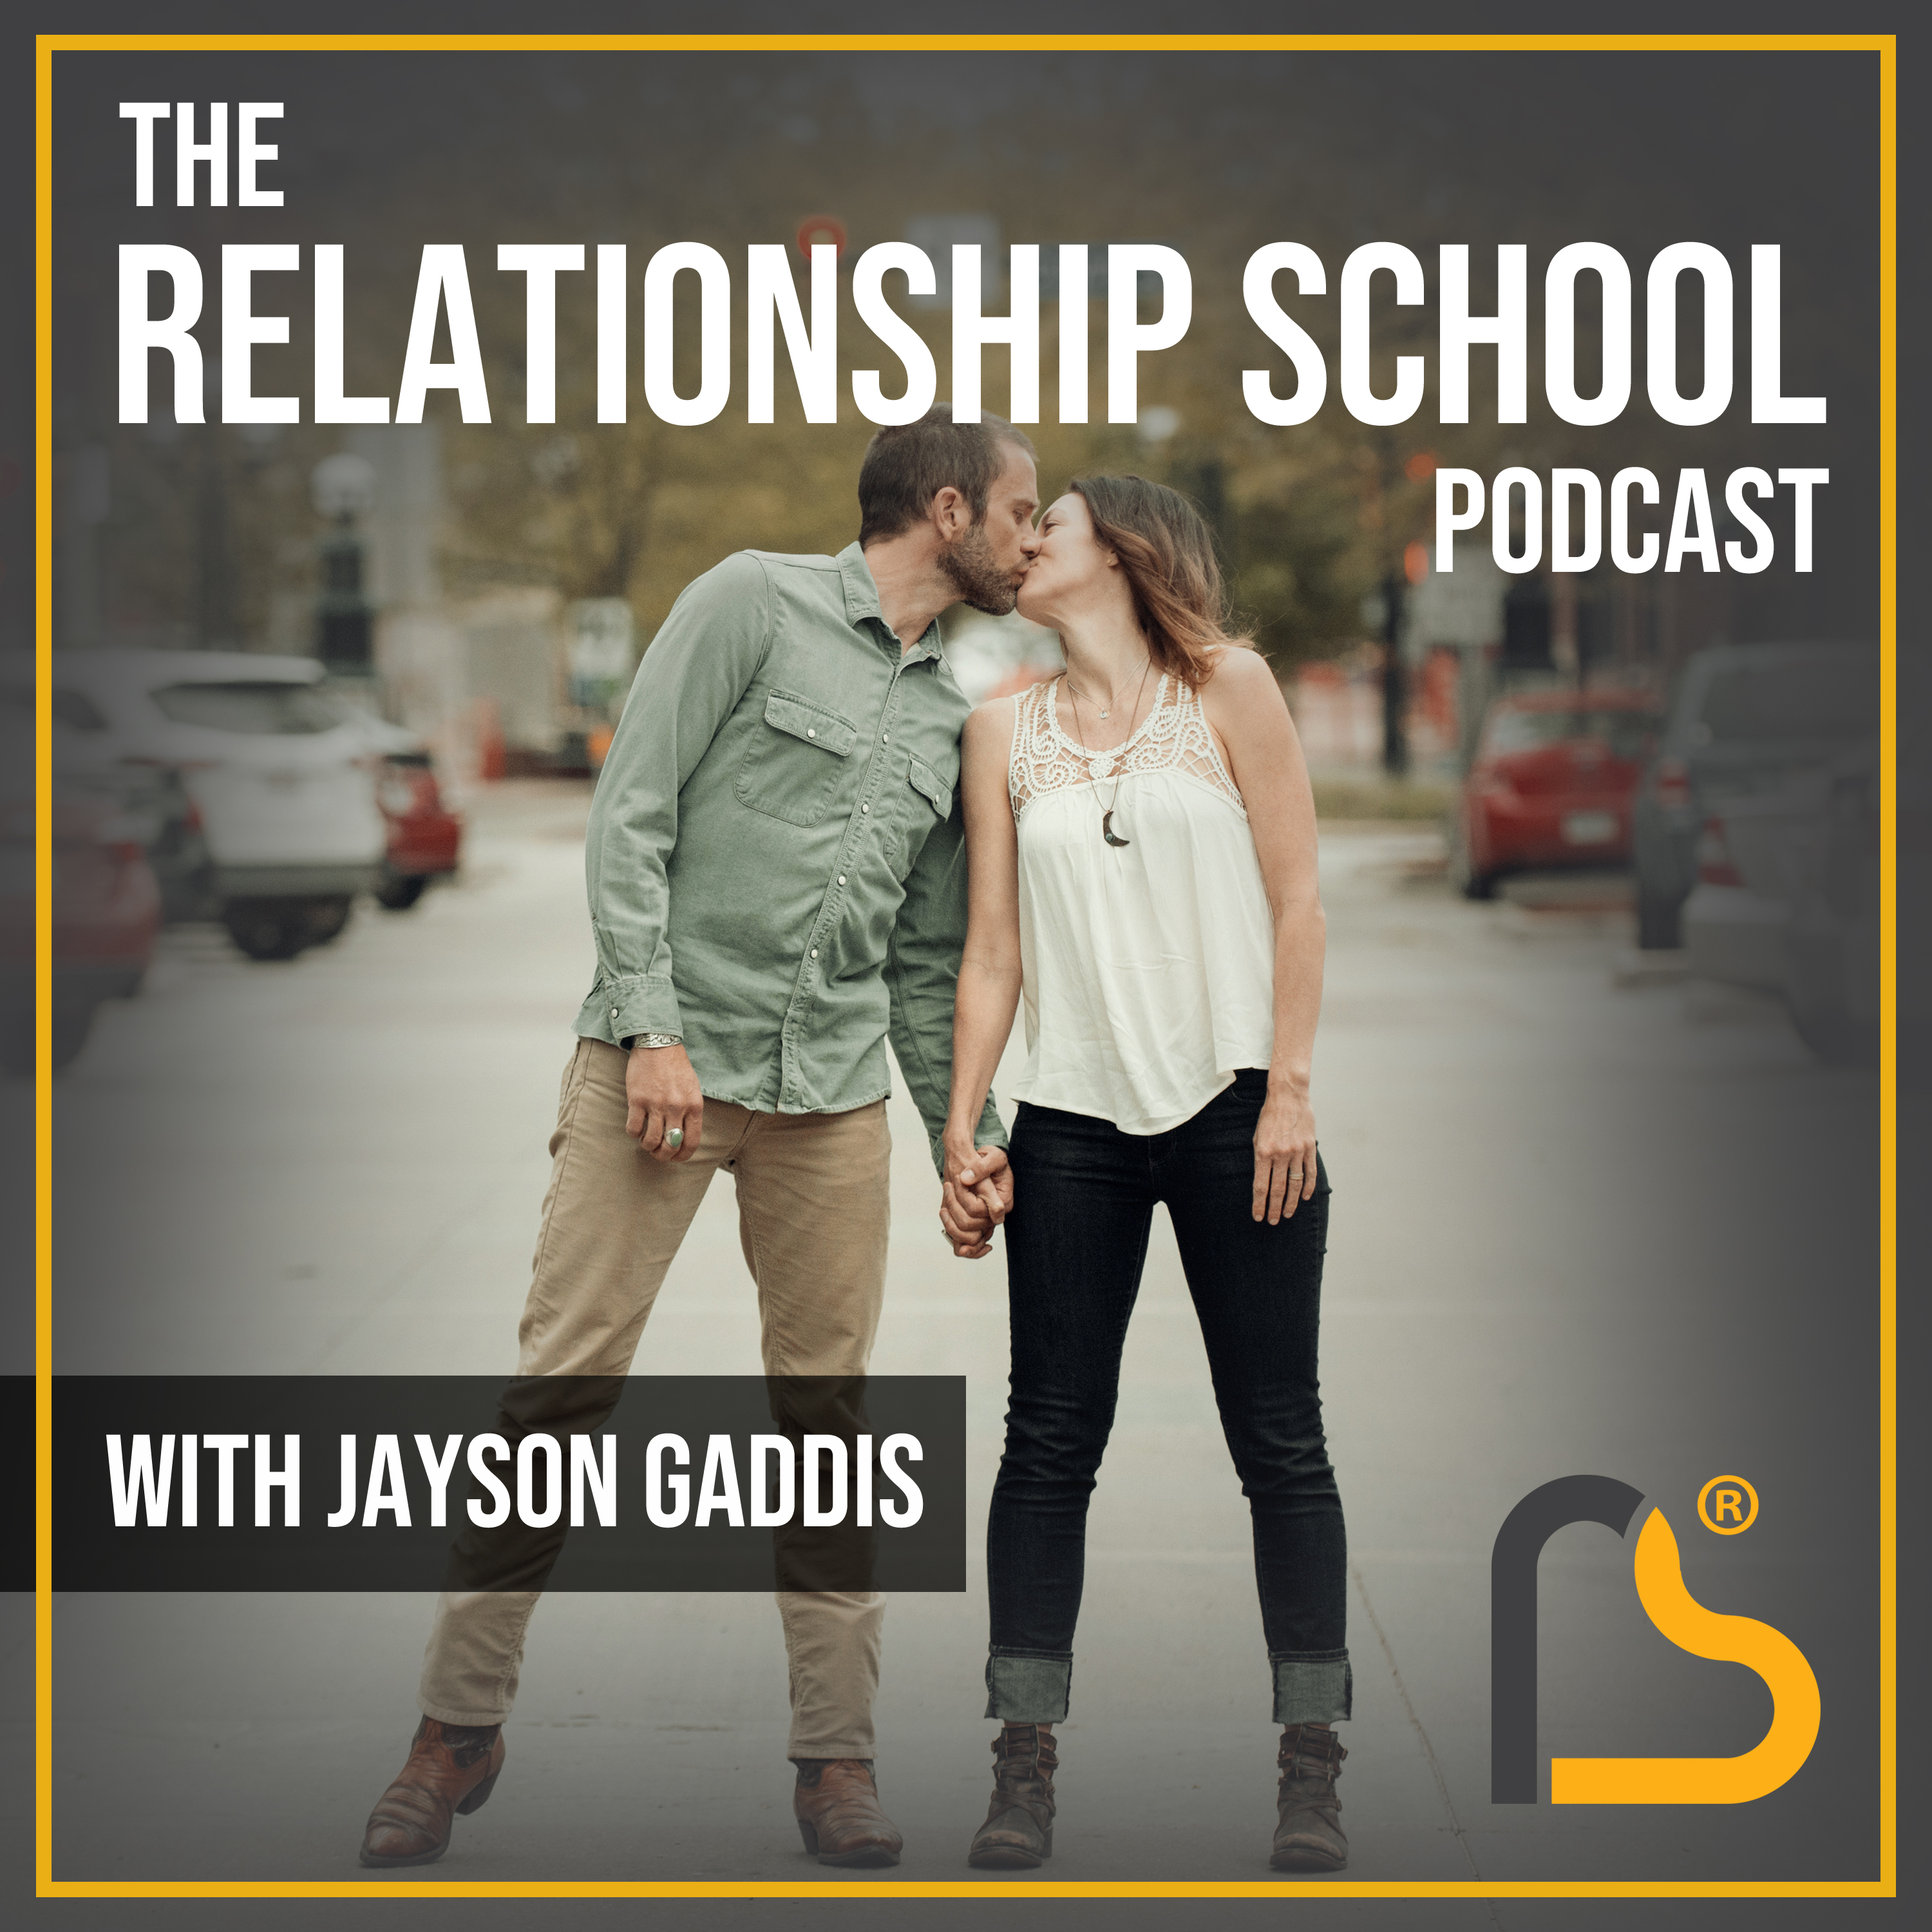 The Relationship School Podcast - Over Parenting - Relationship School Podcast EPISODE 256